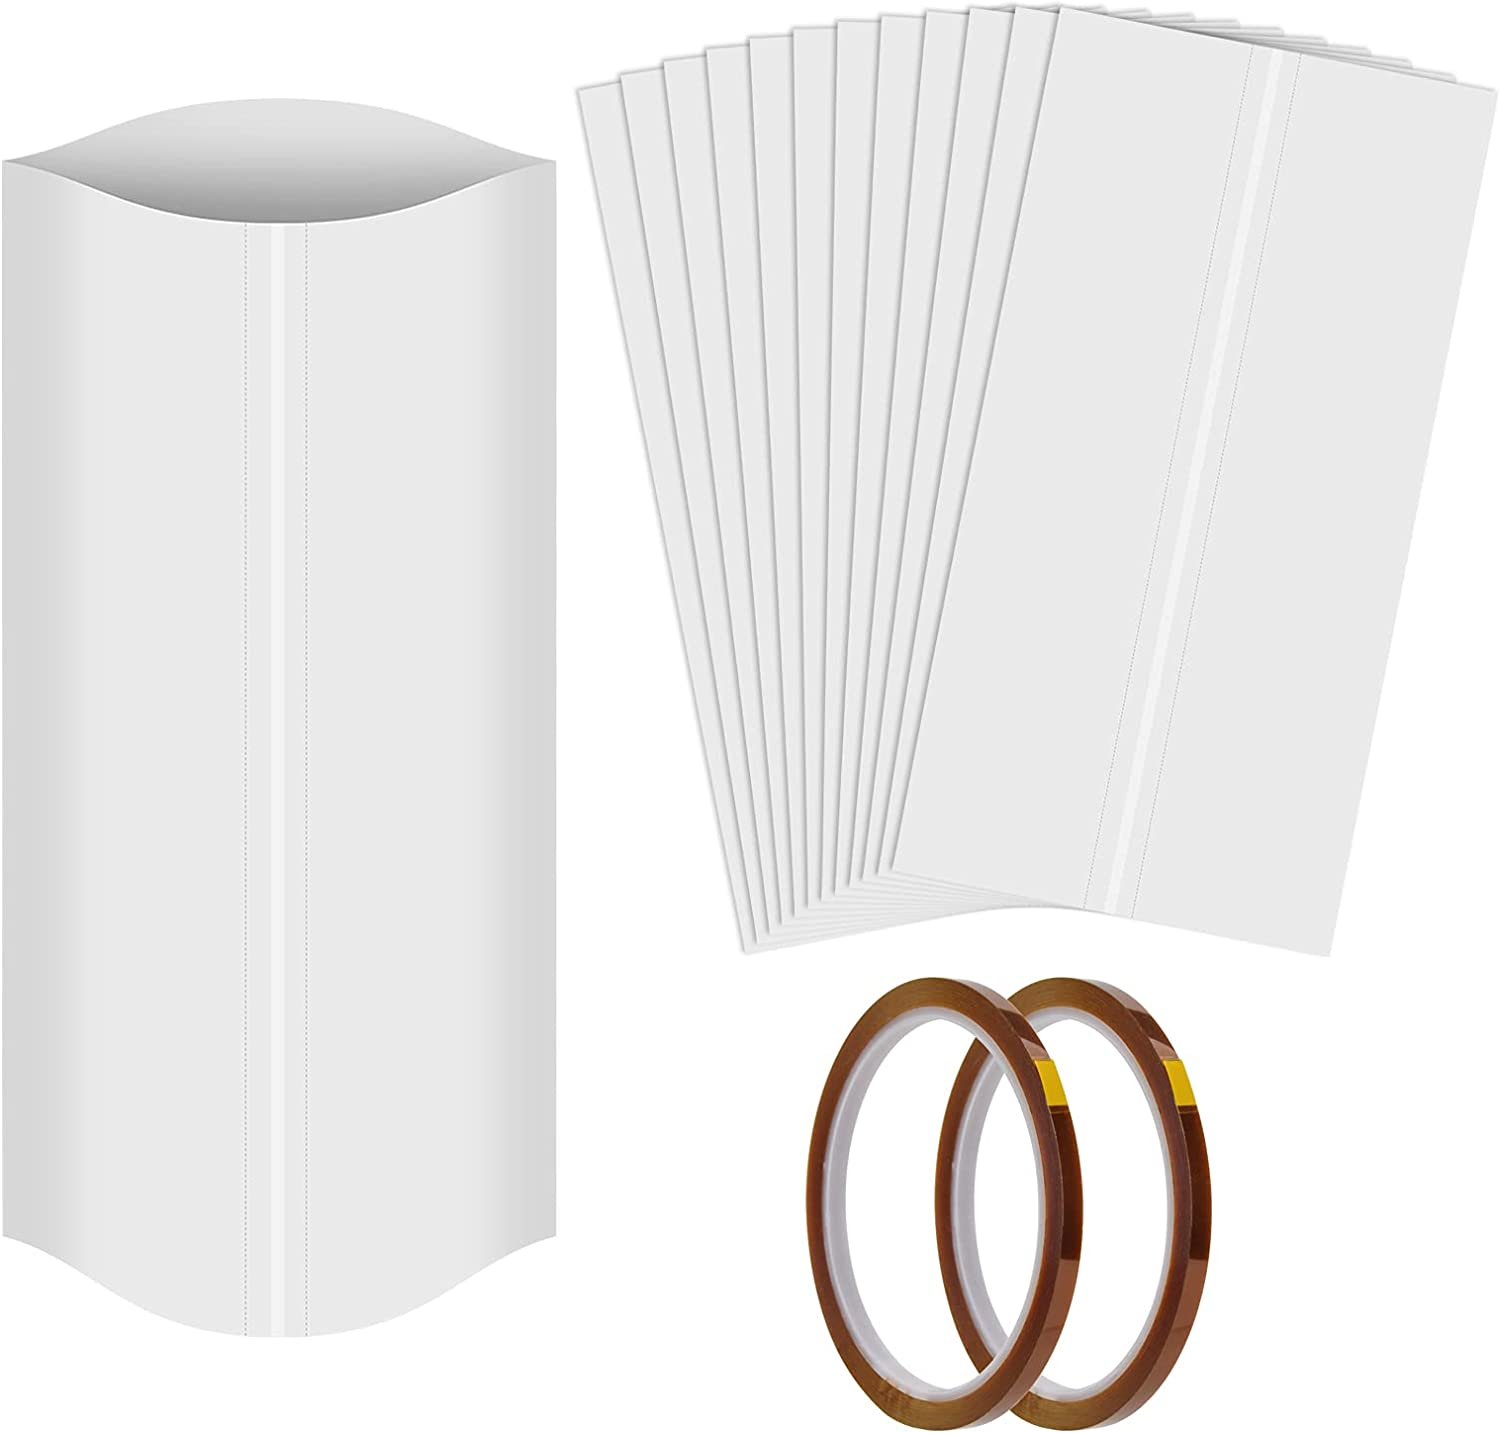 Many popular brands 8x12 Inch Sublimation Chicago Mall Shrink Wrap Sleeves for Tem High Tumblers